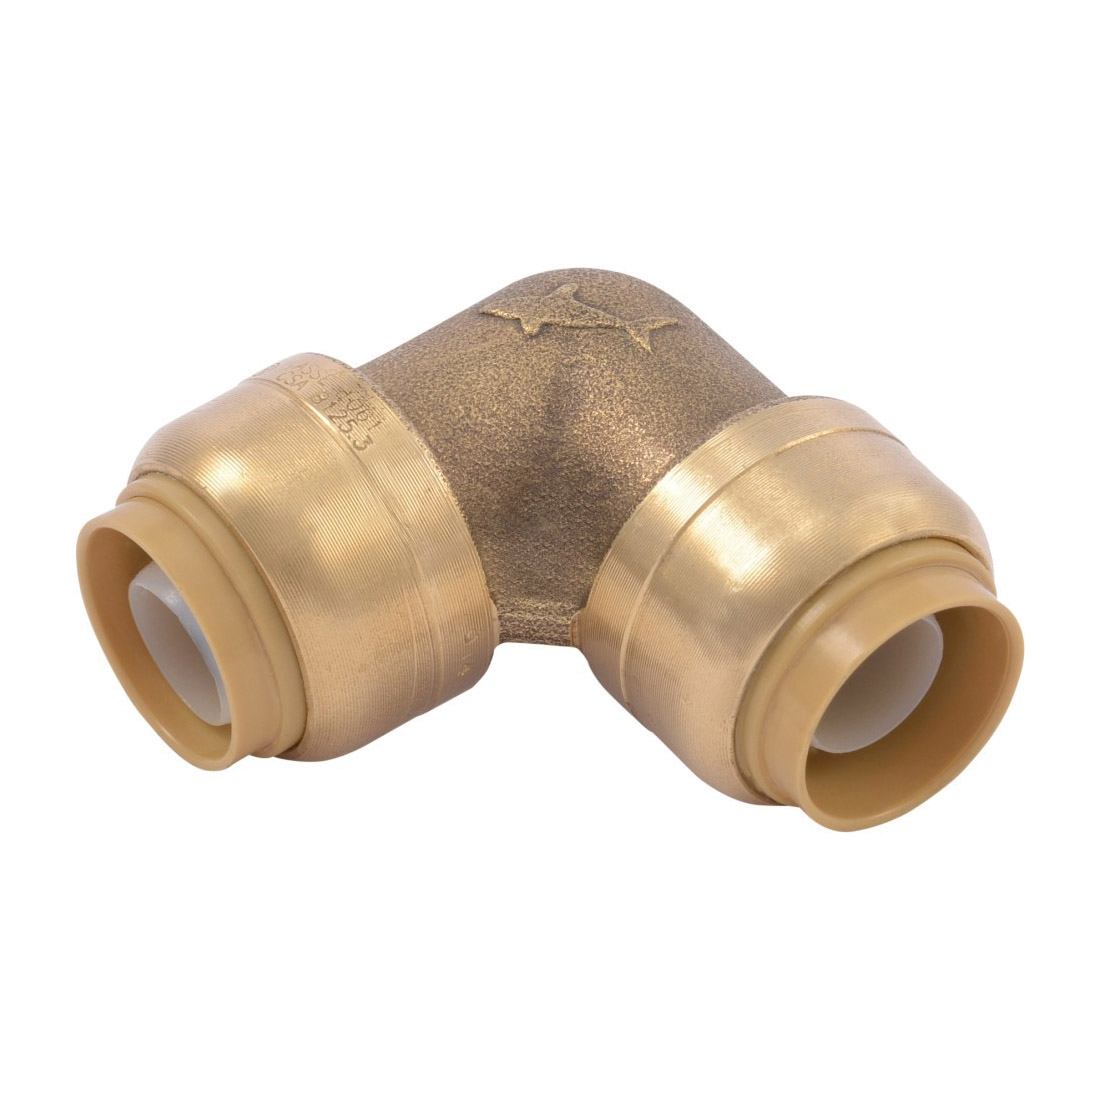 Sharkbite® U248LF Pipe Elbow, 1/2 in Nominal, Push-Fit End Style, Brass, Natural Brass/Chrome Plated, Import